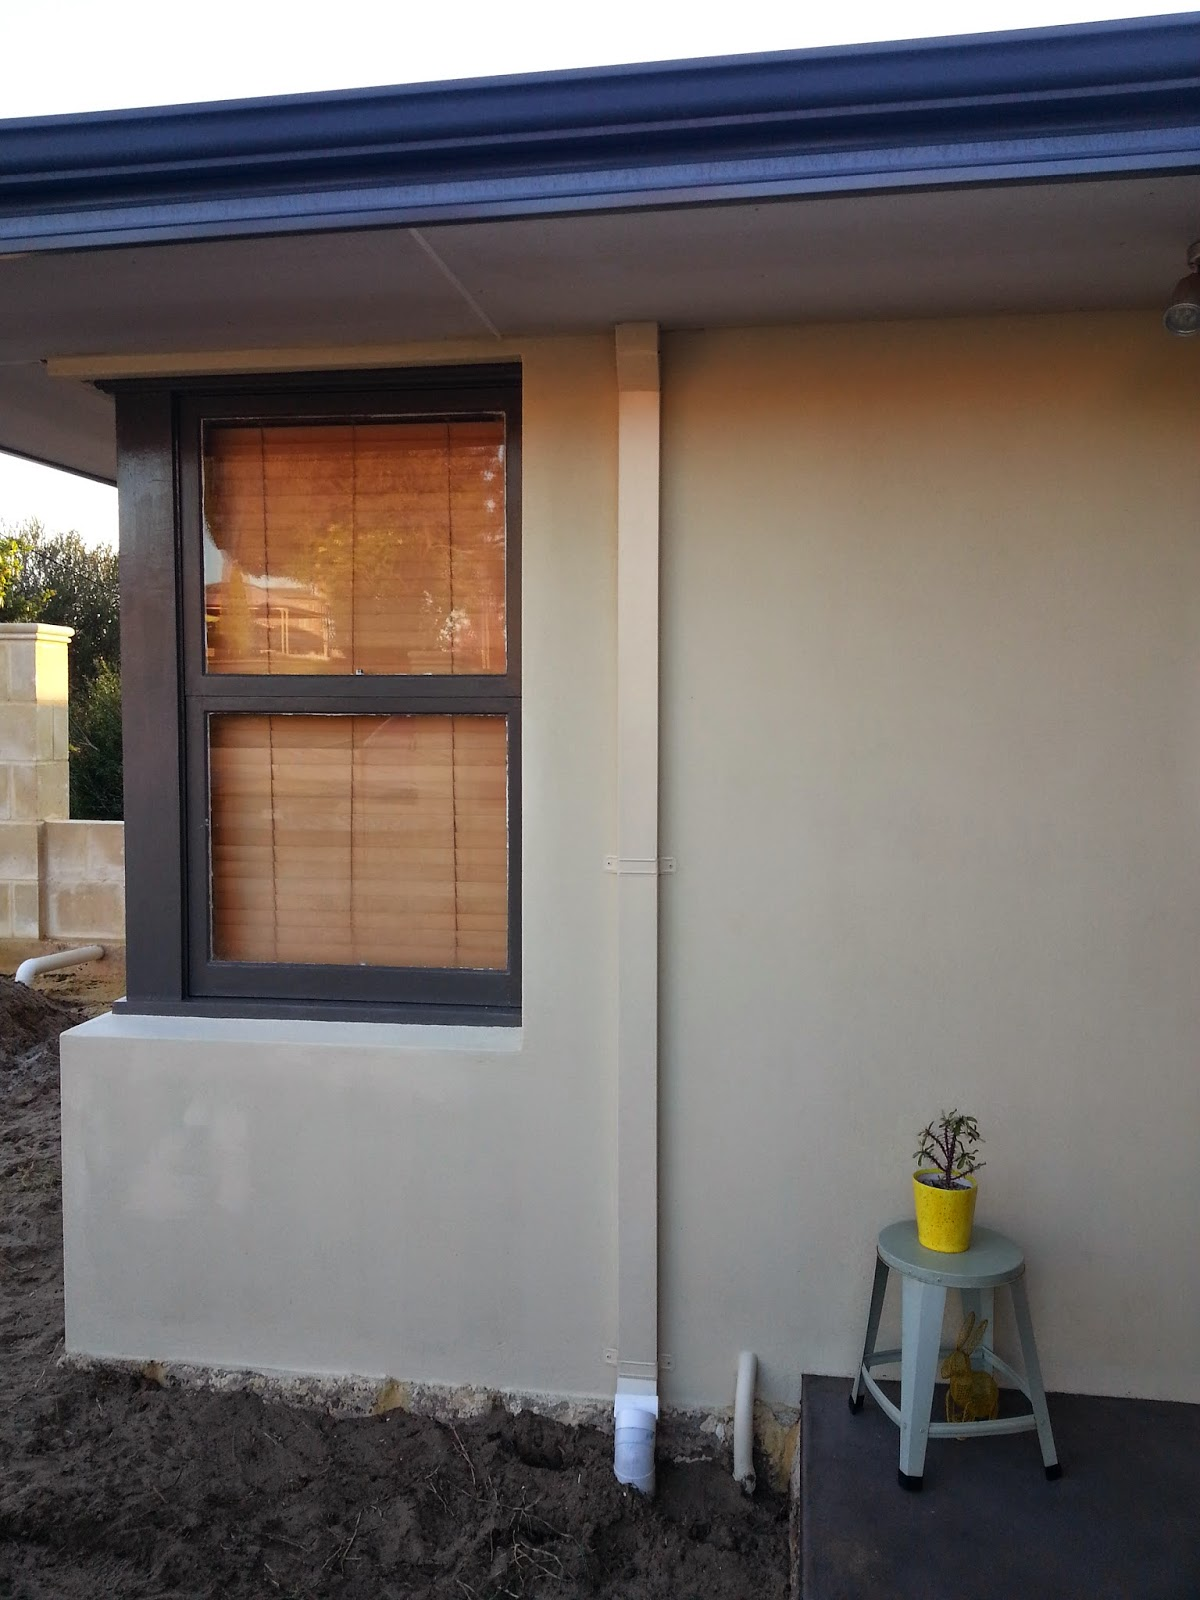 Jarrah jungle before and after window frames with dulux paint - Dulux exterior paint colour schemes property ...